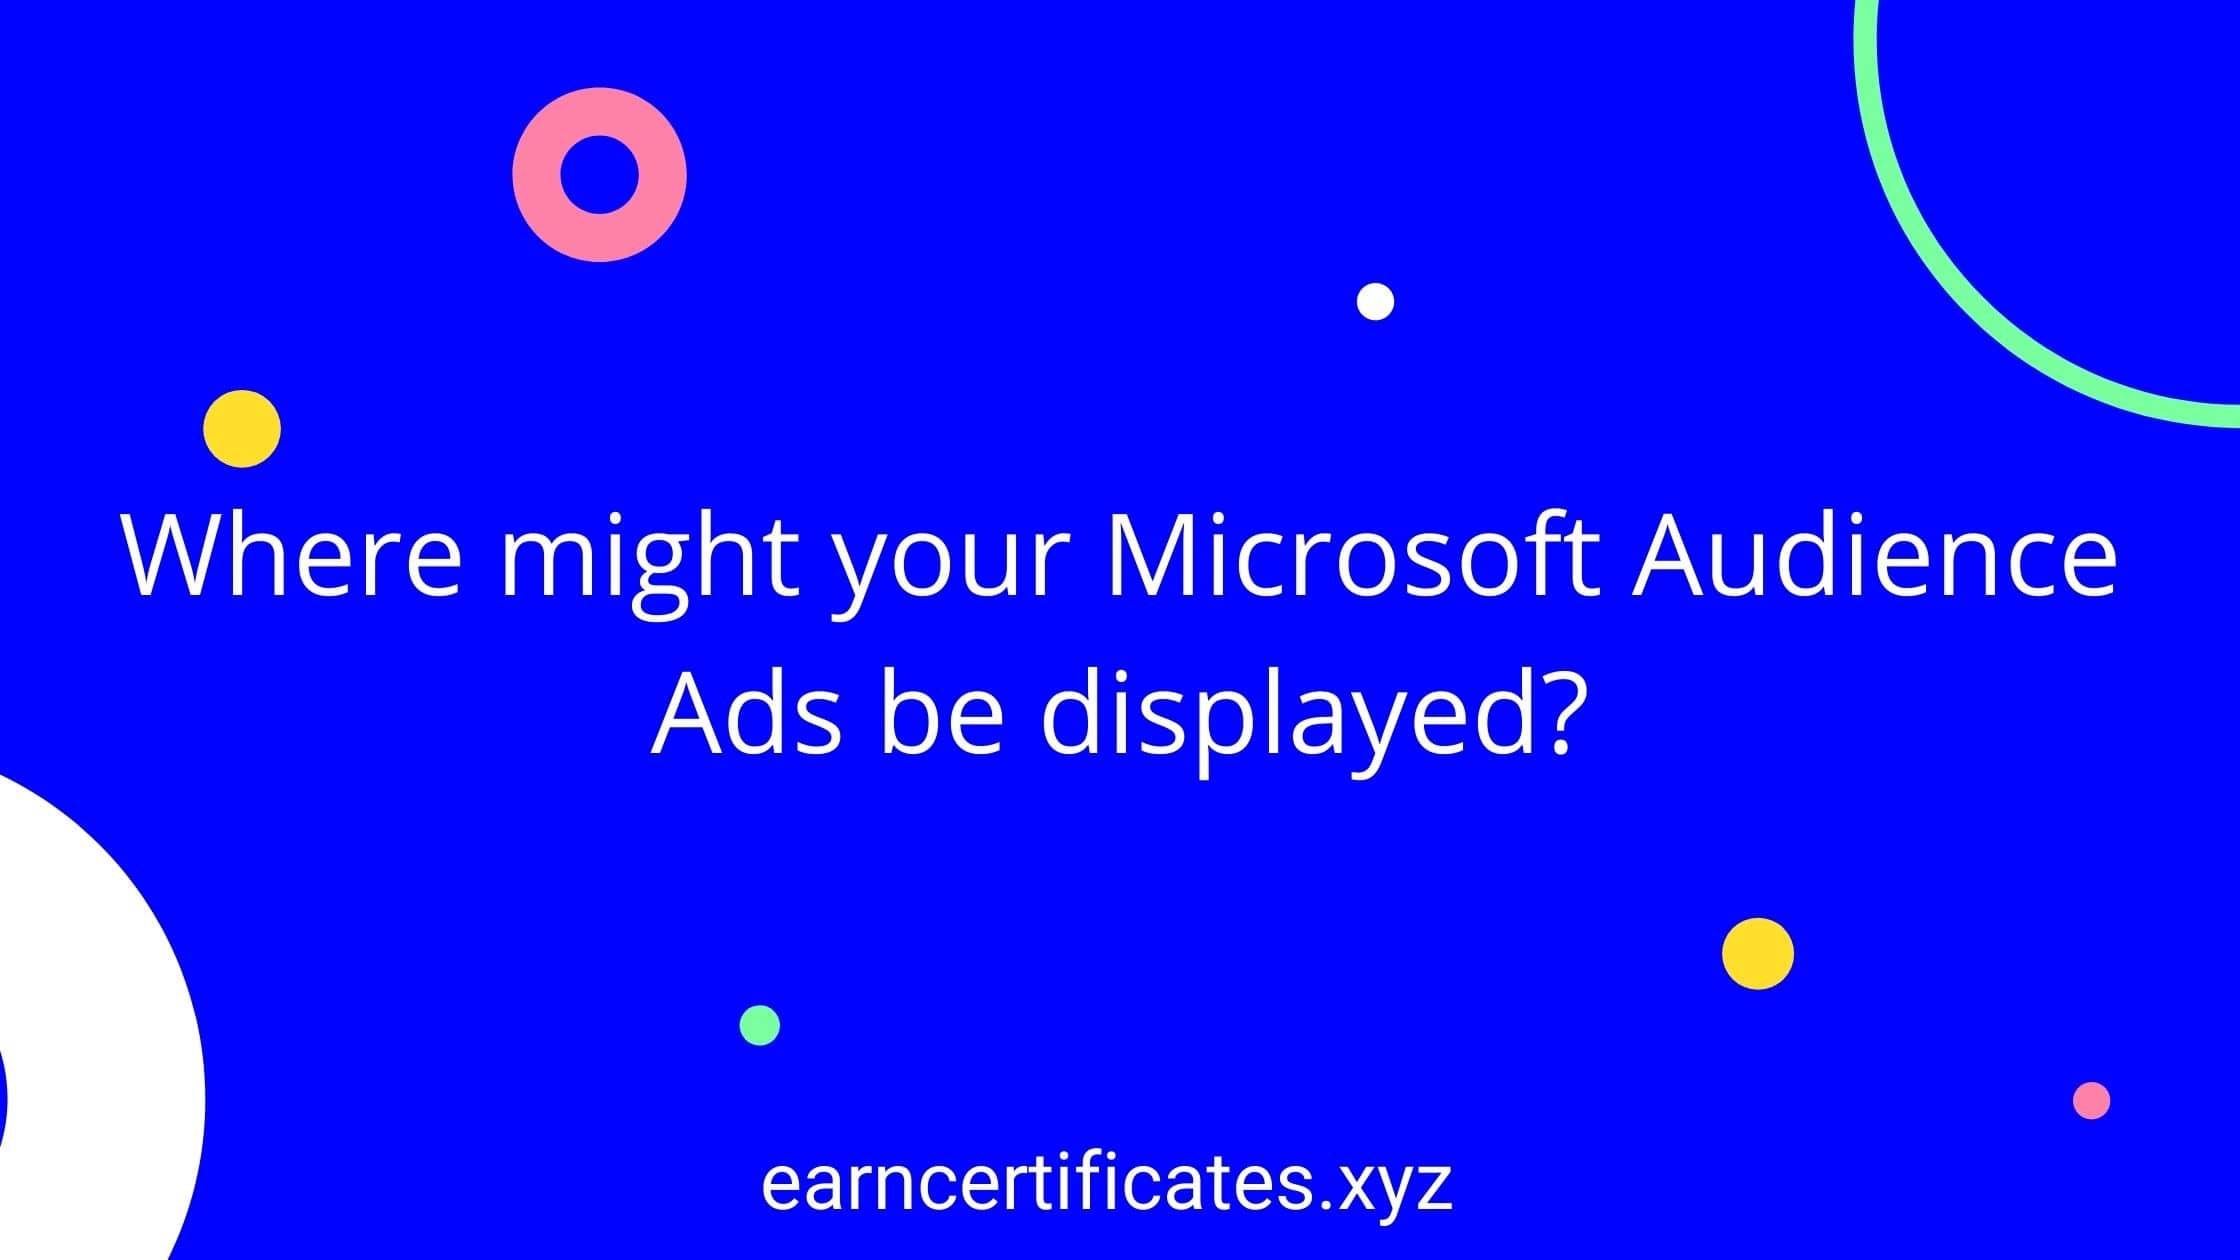 Where might your Microsoft Audience Ads be displayed?